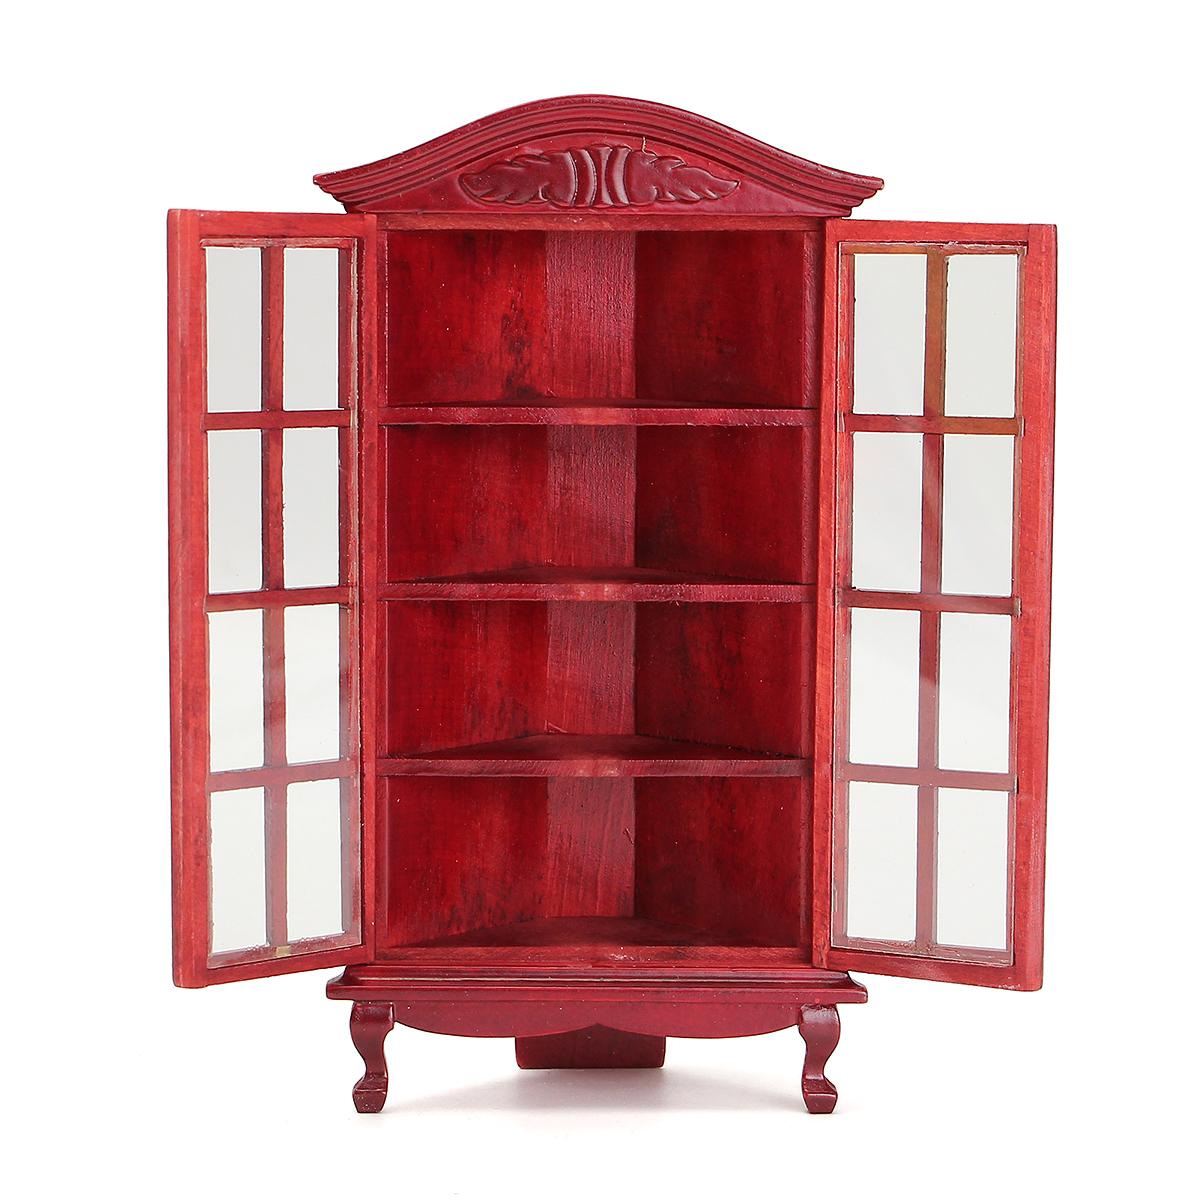 1 12 dollhouse miniature furniture modern white red wooden display cabinet doll house Dollhouse wooden furniture